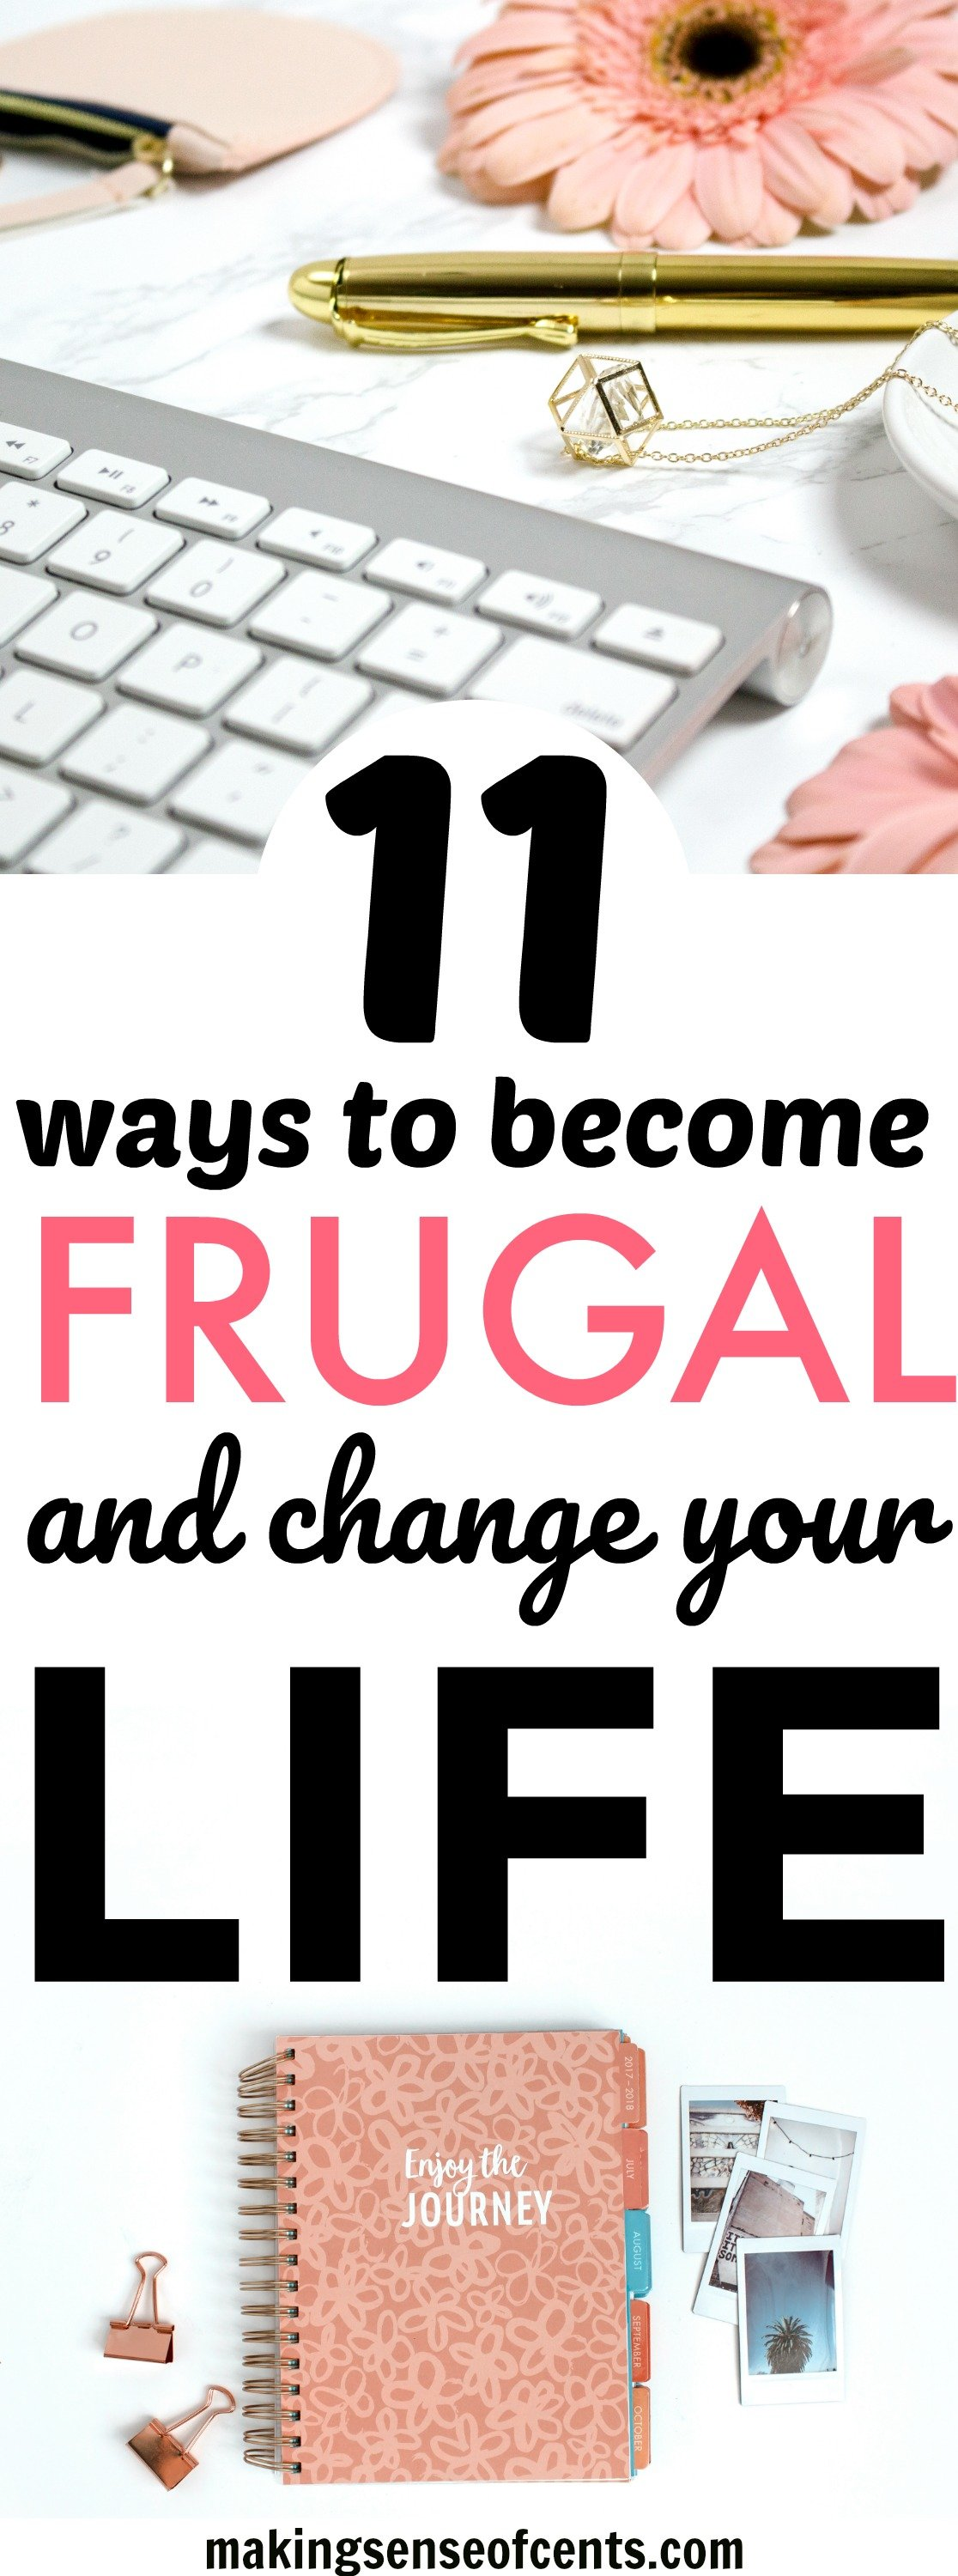 frugal living secrets spend less and get more through frugality english edition mnvz9ie1